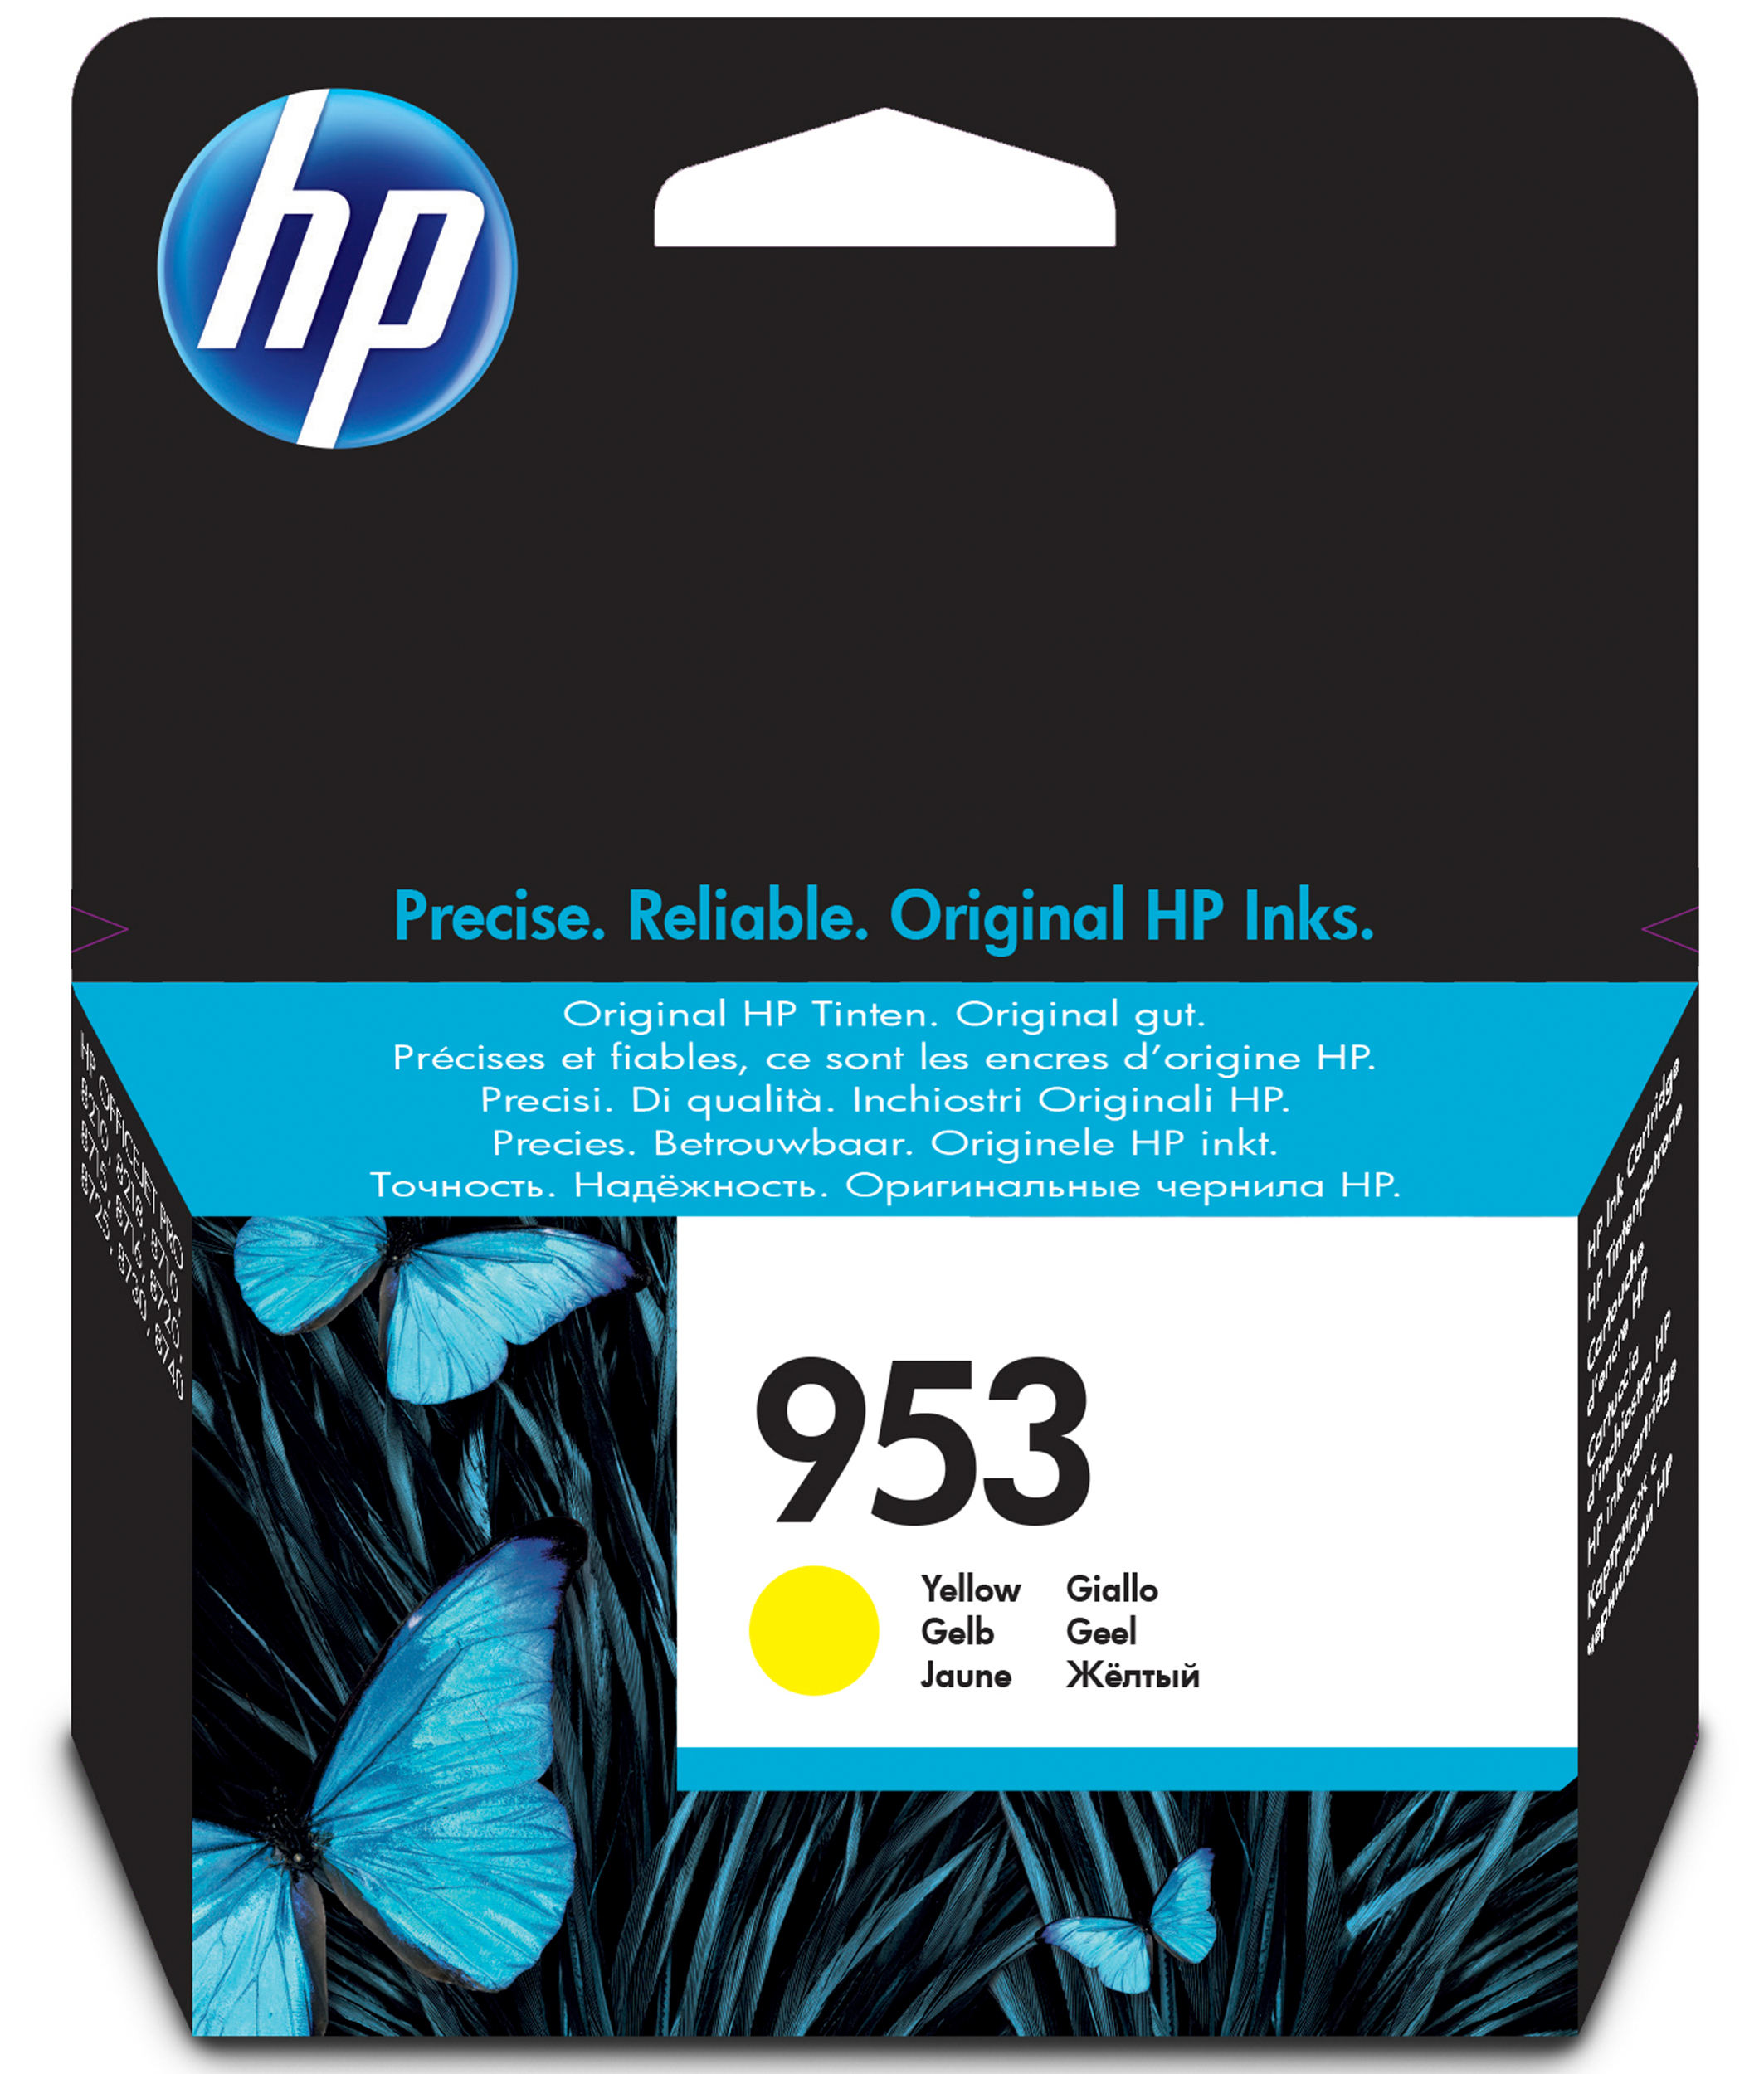 HP 953 - 10 Ml - Yellow - Original - Ink Cartridge - For Officejet Pro 8210, 8710, 8715, 8718, 8719, 8720, 8725, 8730, 8740, 8745 F6U14AE#BGX - C2000